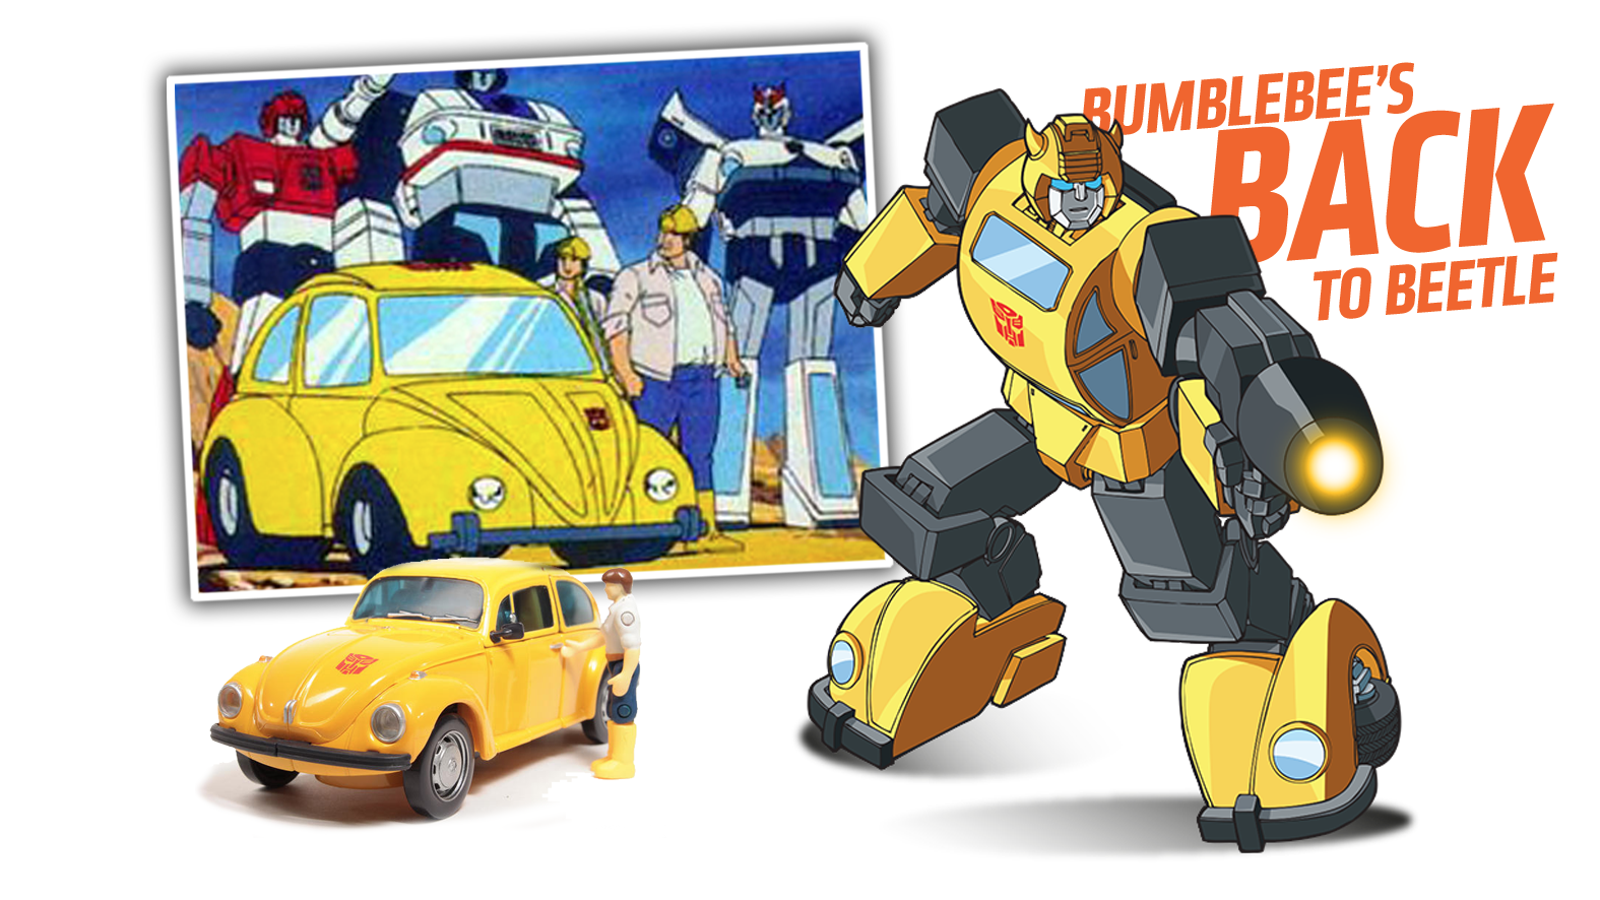 Bumblebee Returns In His Original Volkswagen Beetle Form In The Next Transformers Movie